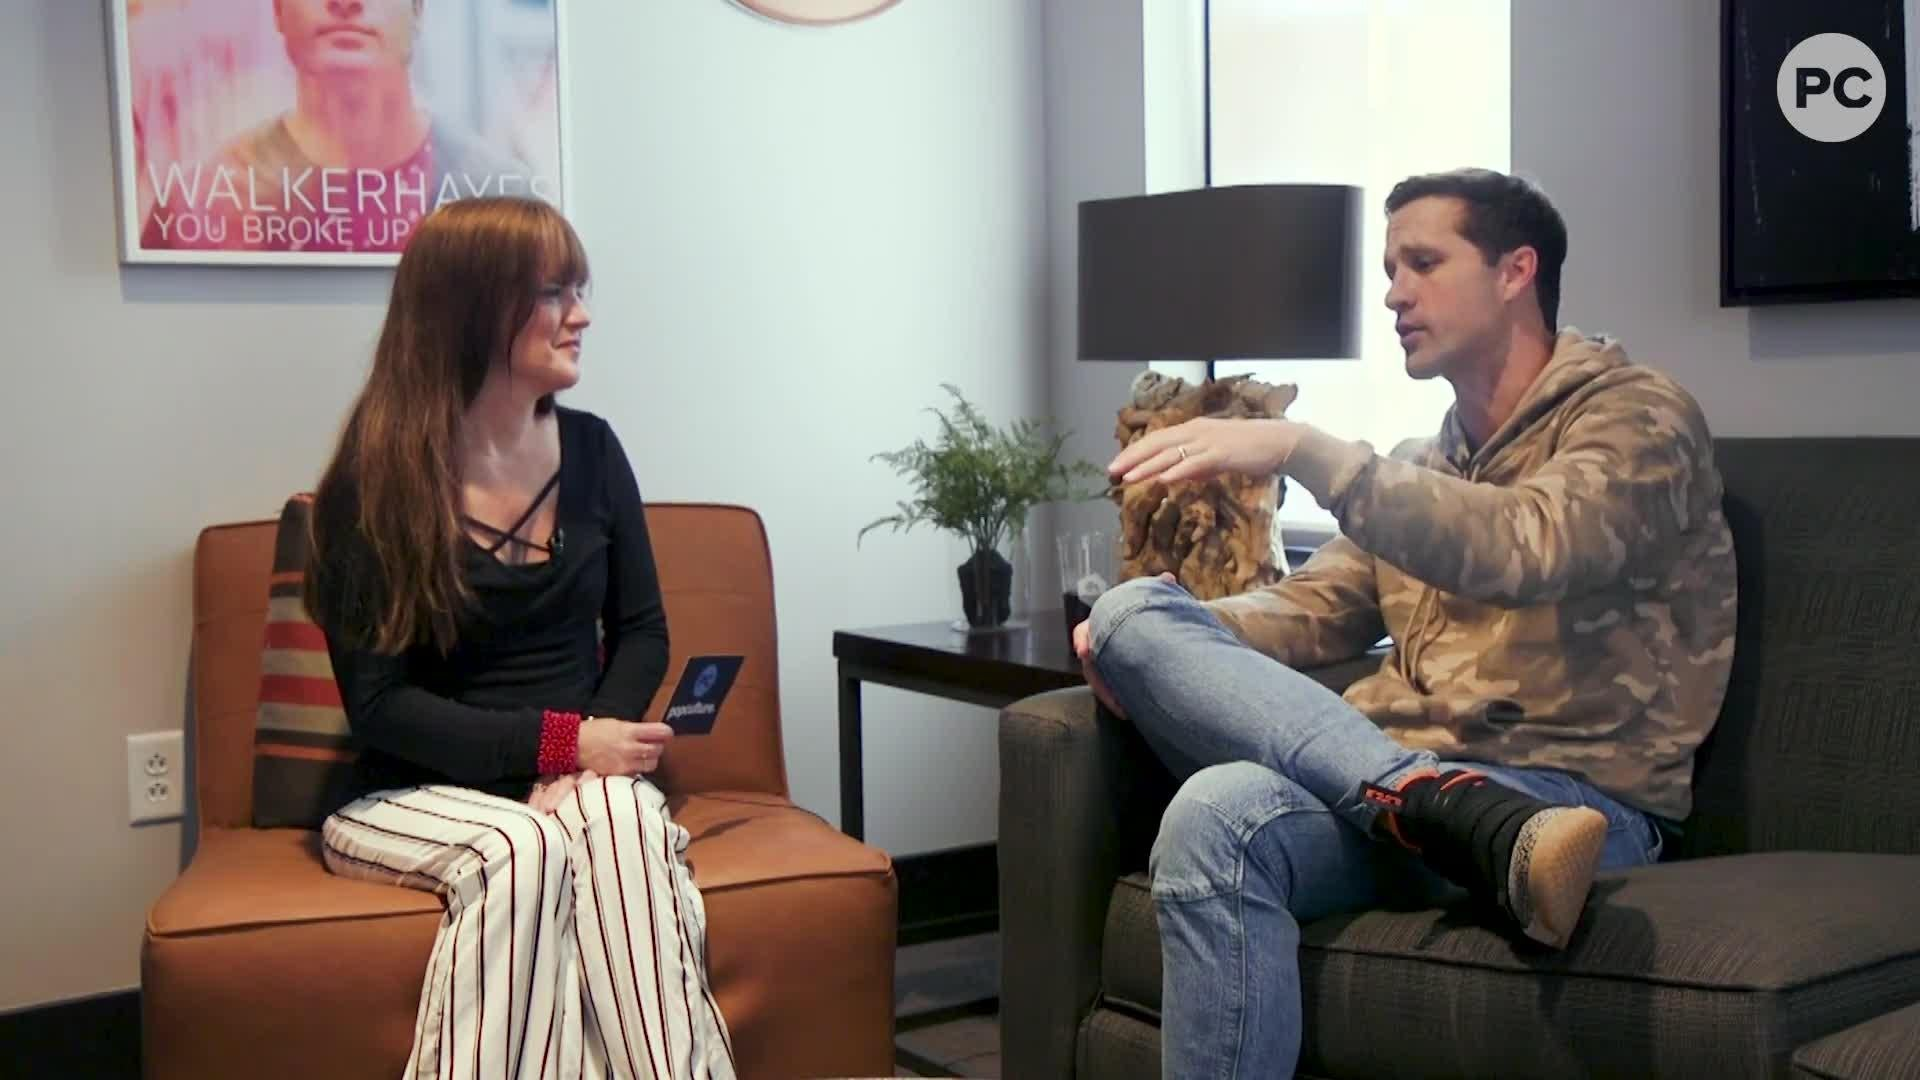 Exclusive Interview with Walker Hayes screen capture